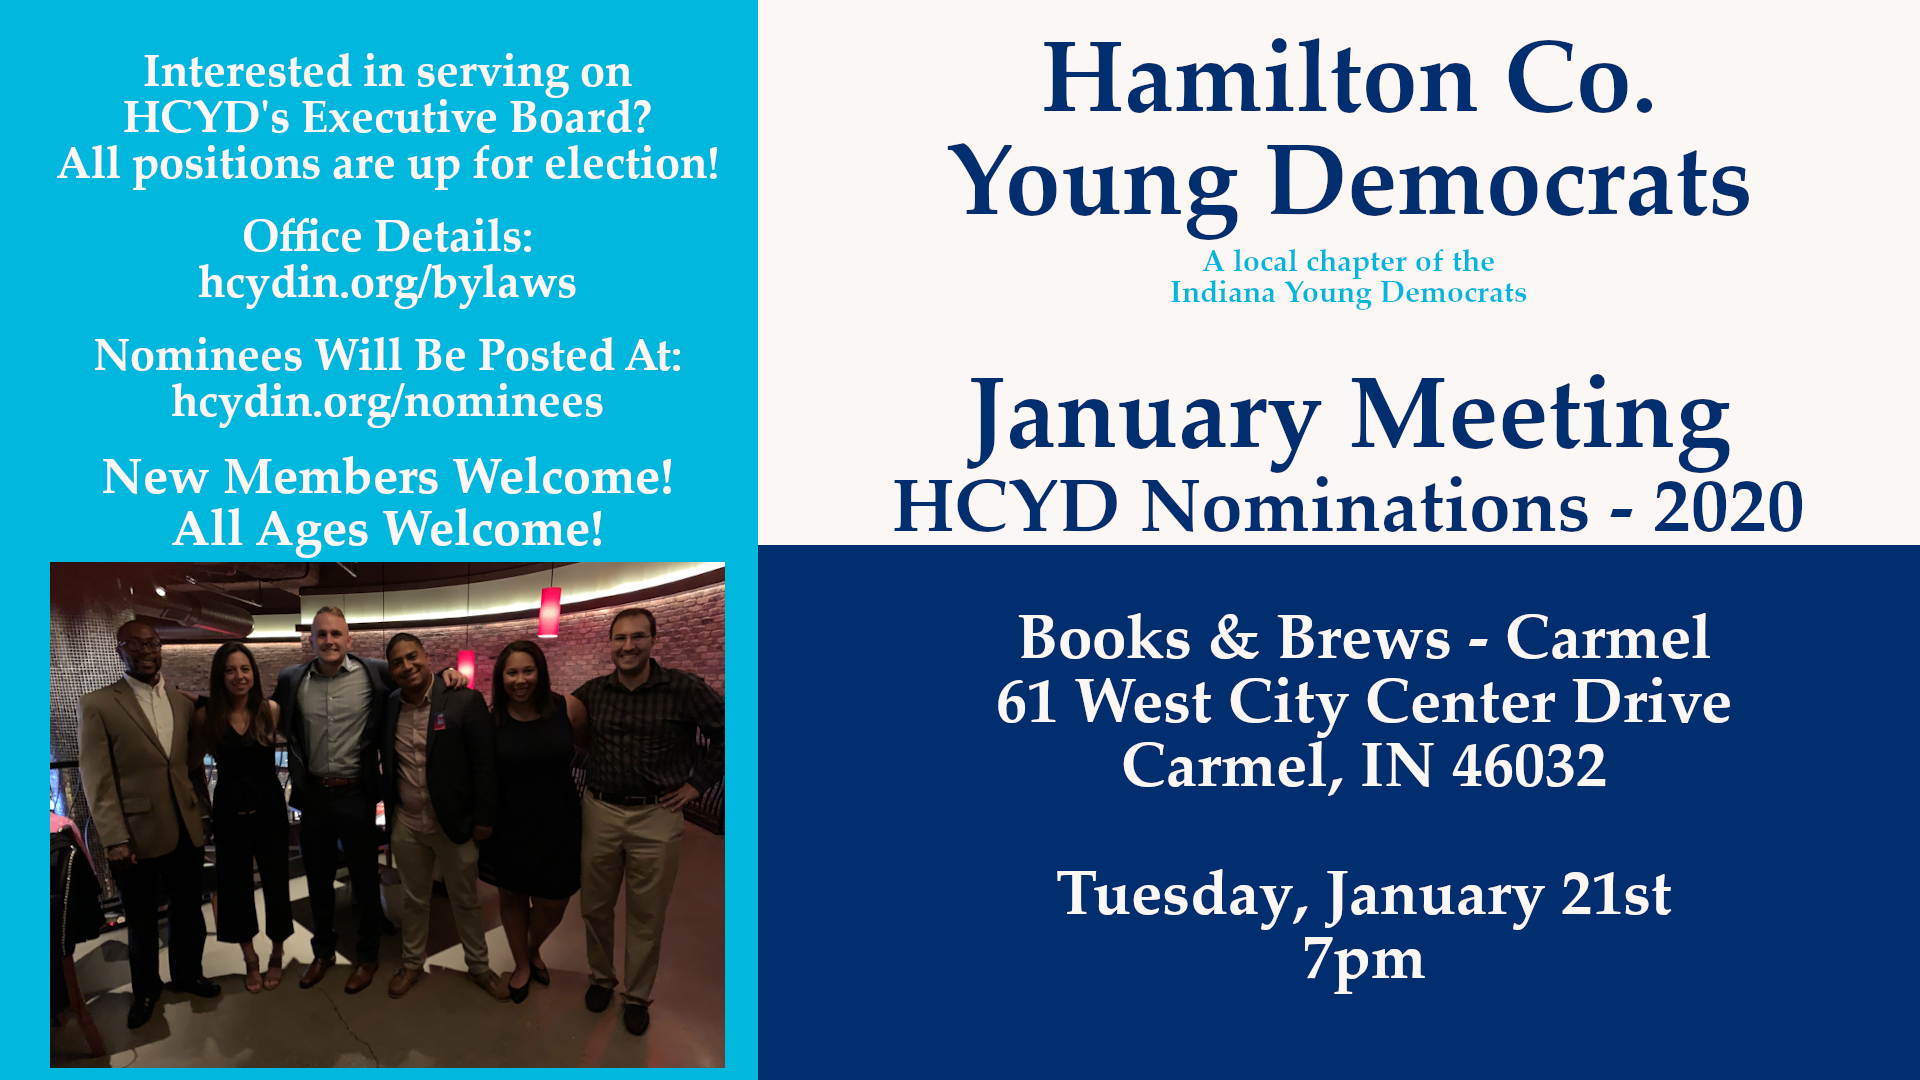 January Meeting Officer Nomination Carmel Books Brews Hamilton County Young Democrats 2020